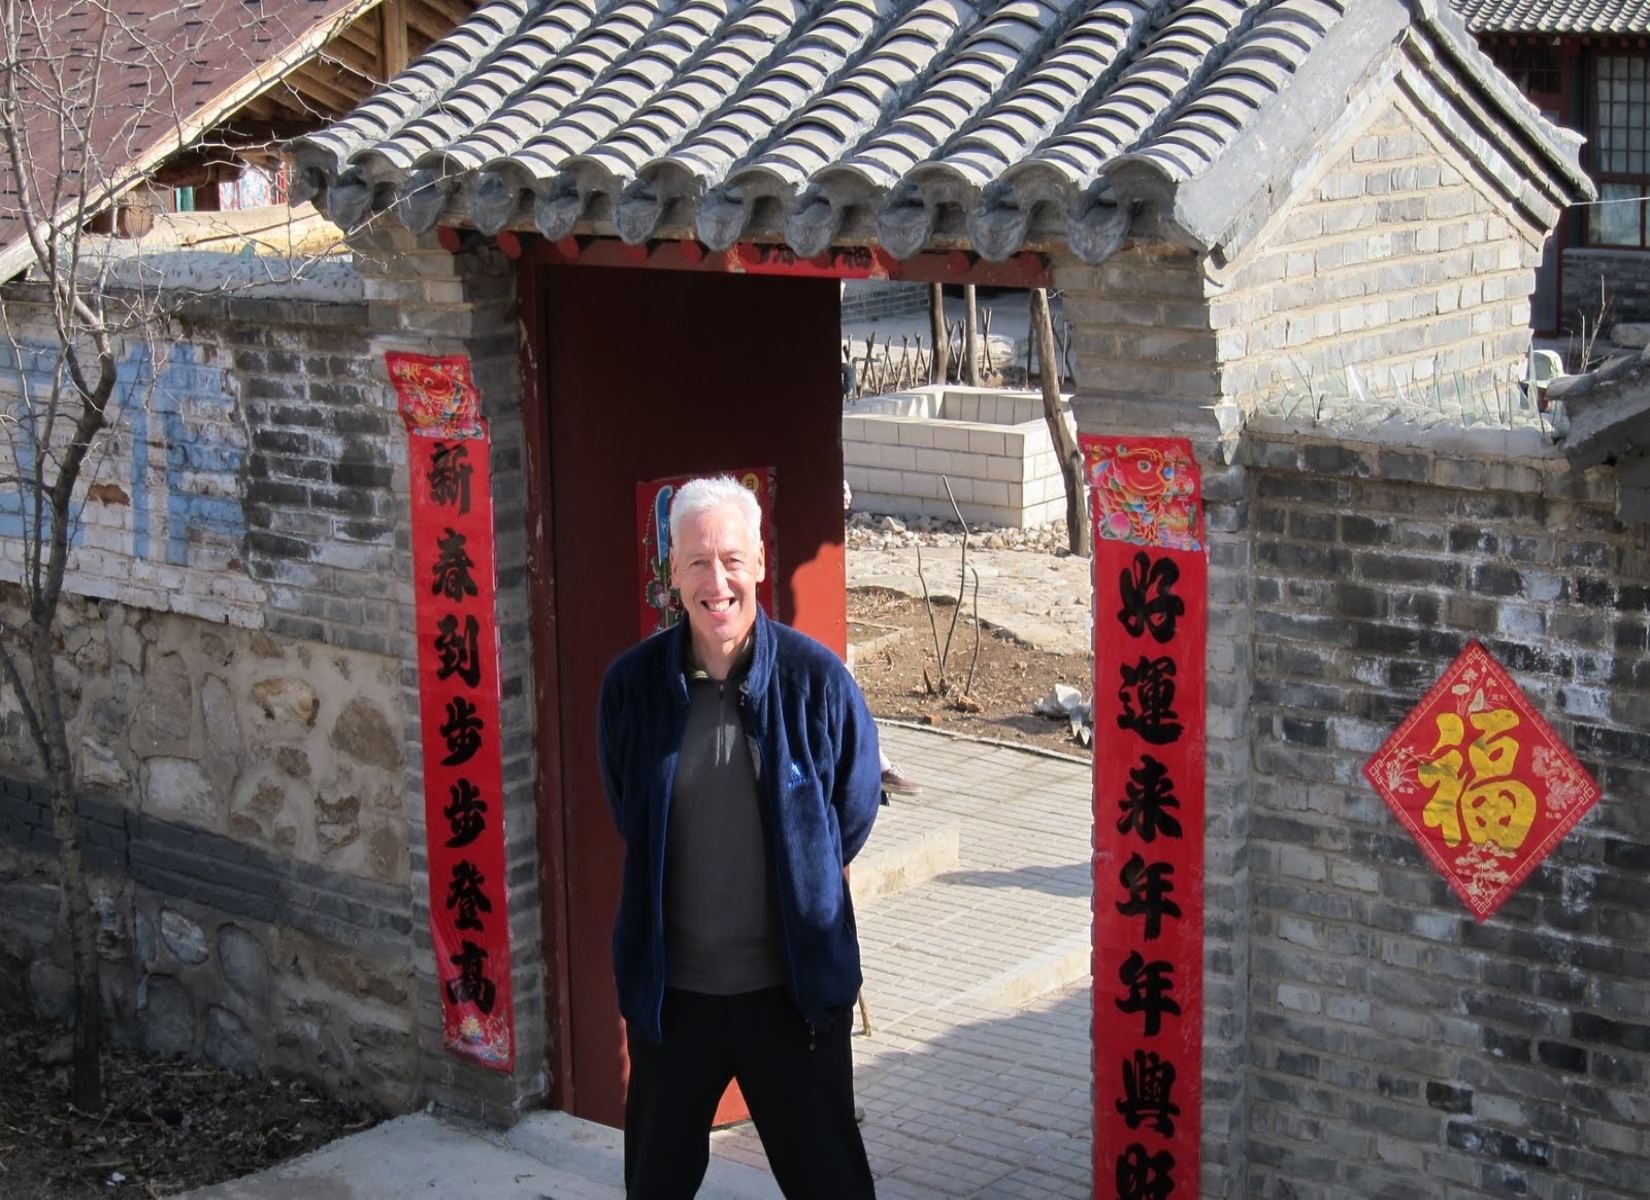 William Lindesay. Image by wildchina.com